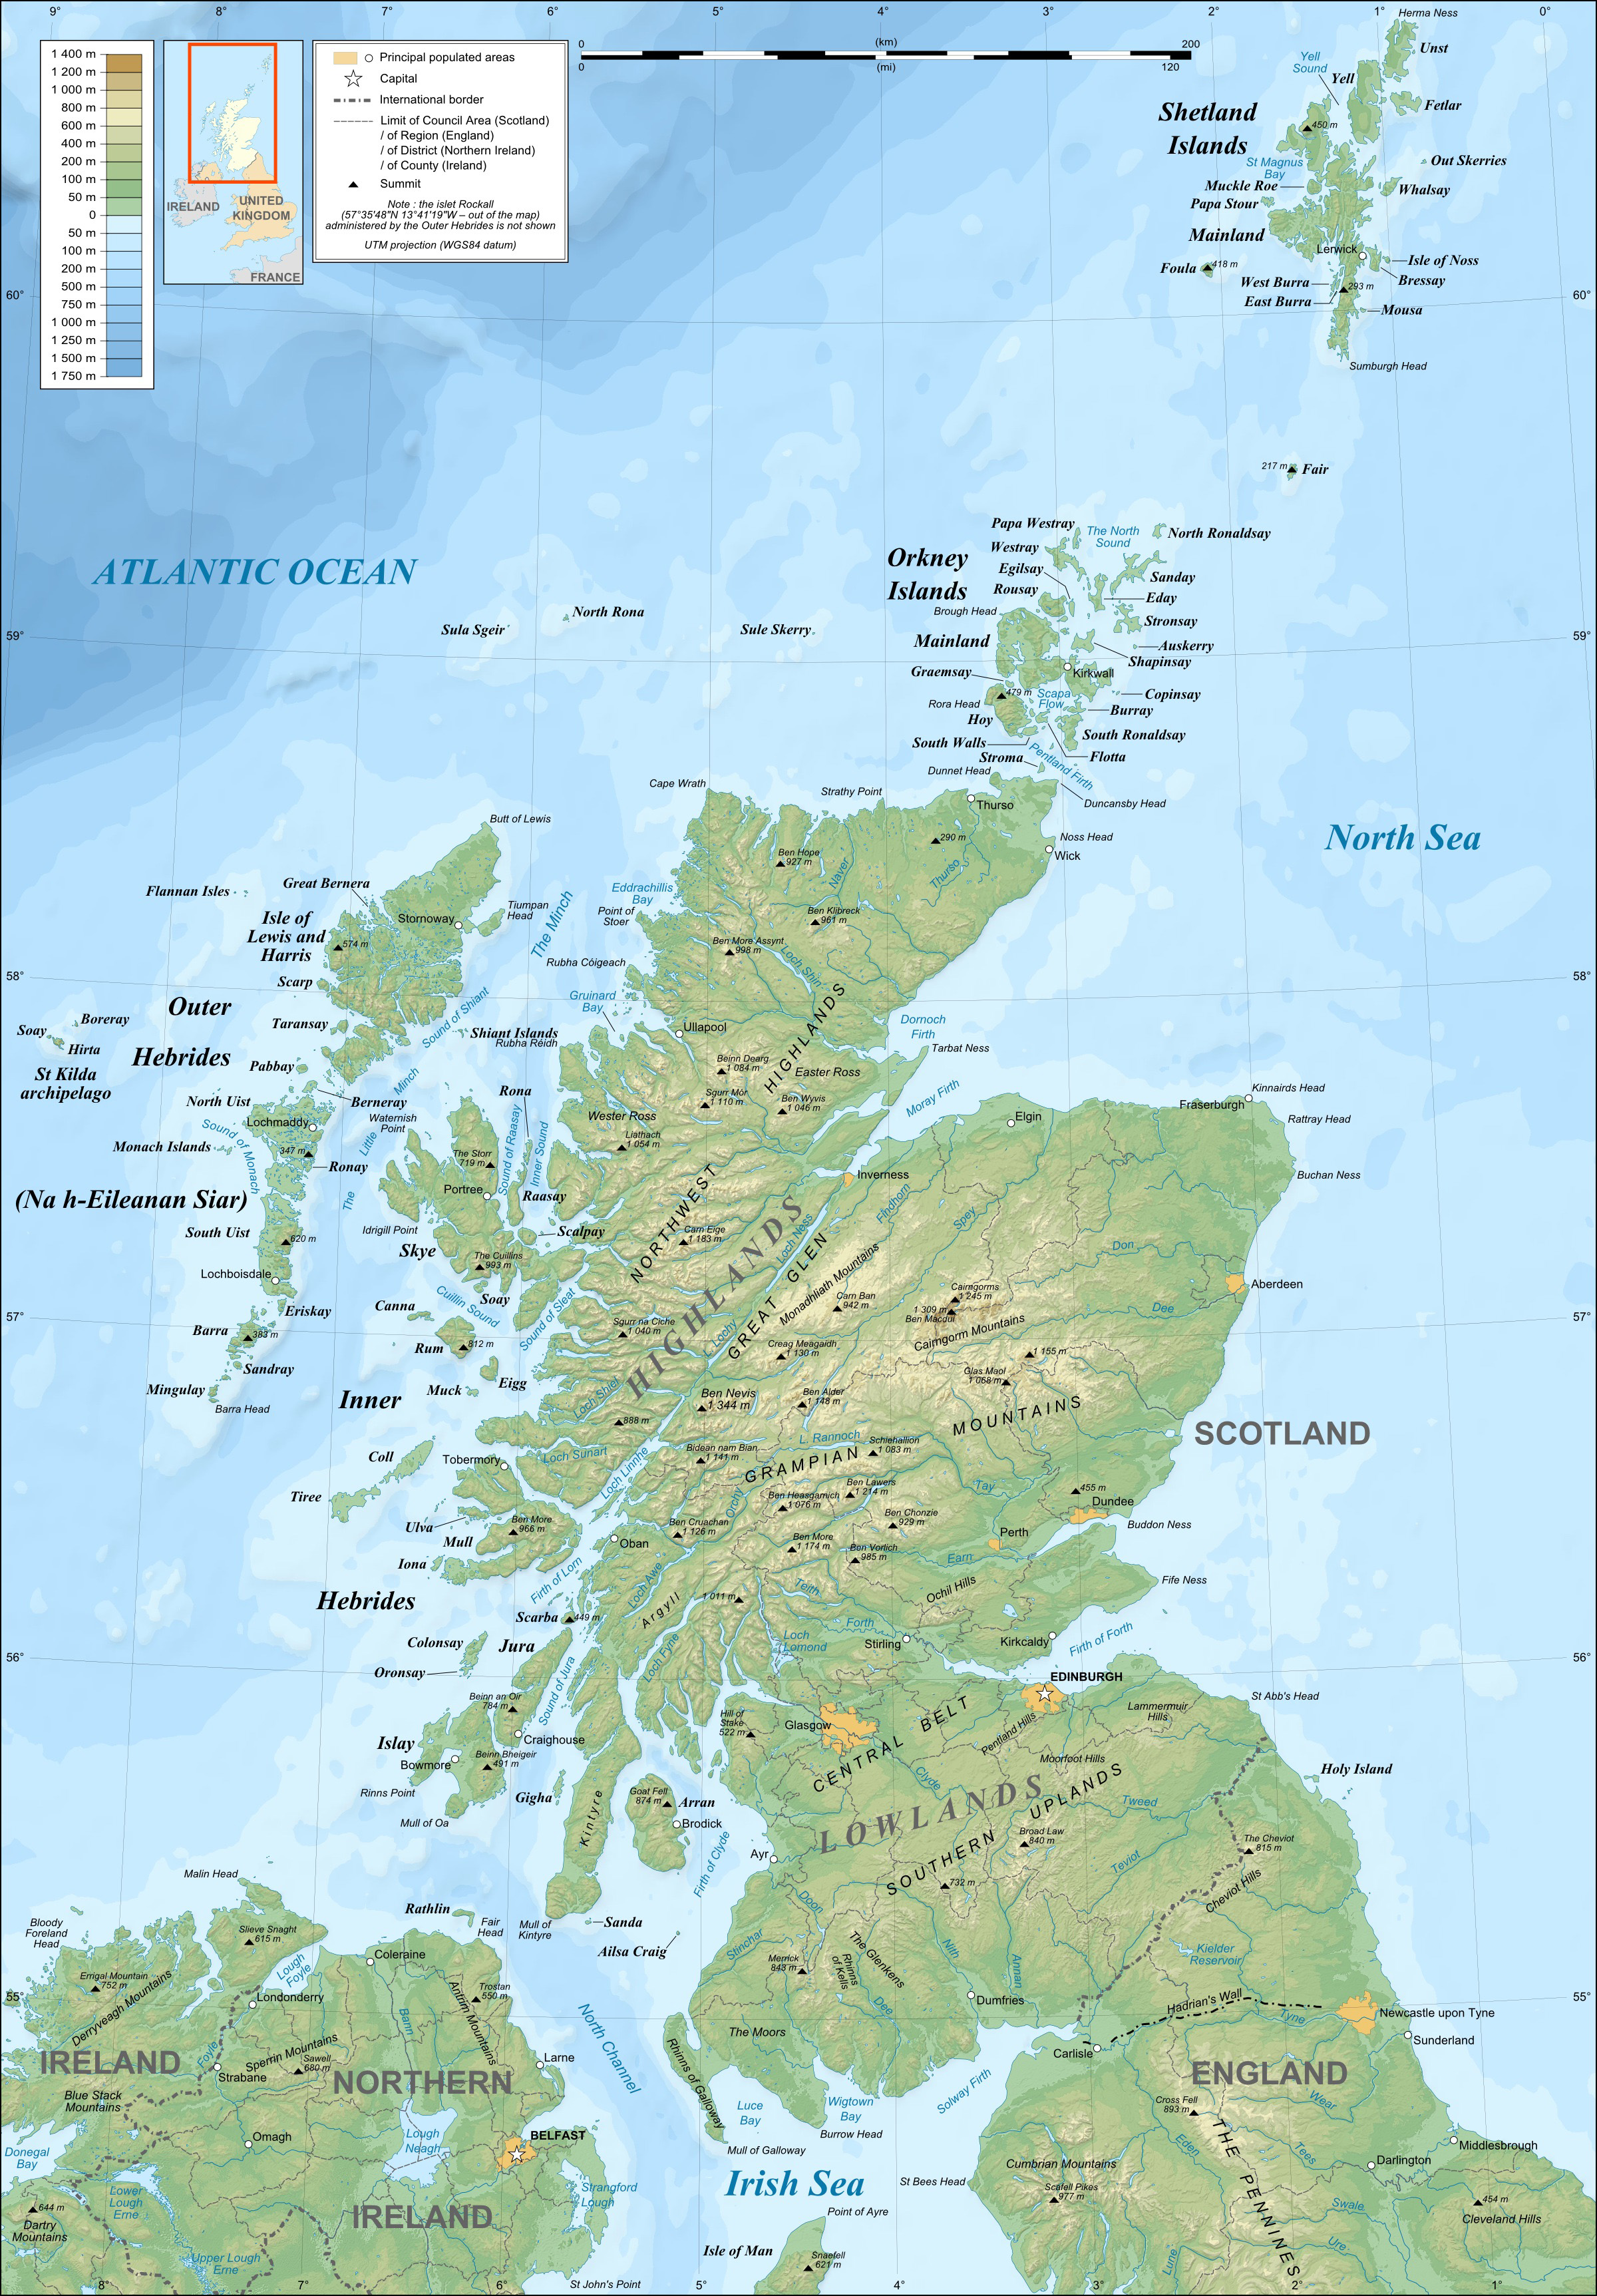 golf in ireland map with File Scotland Topographic Map En on Diagram Of The Ear For Kids also Nevada furthermore Prosslare Wexford likewise Ronda Rousey Sports Illustrated Swimsuit Issue Gallery Nsfw moreover 25 Free Nature Hd Backgrounds.